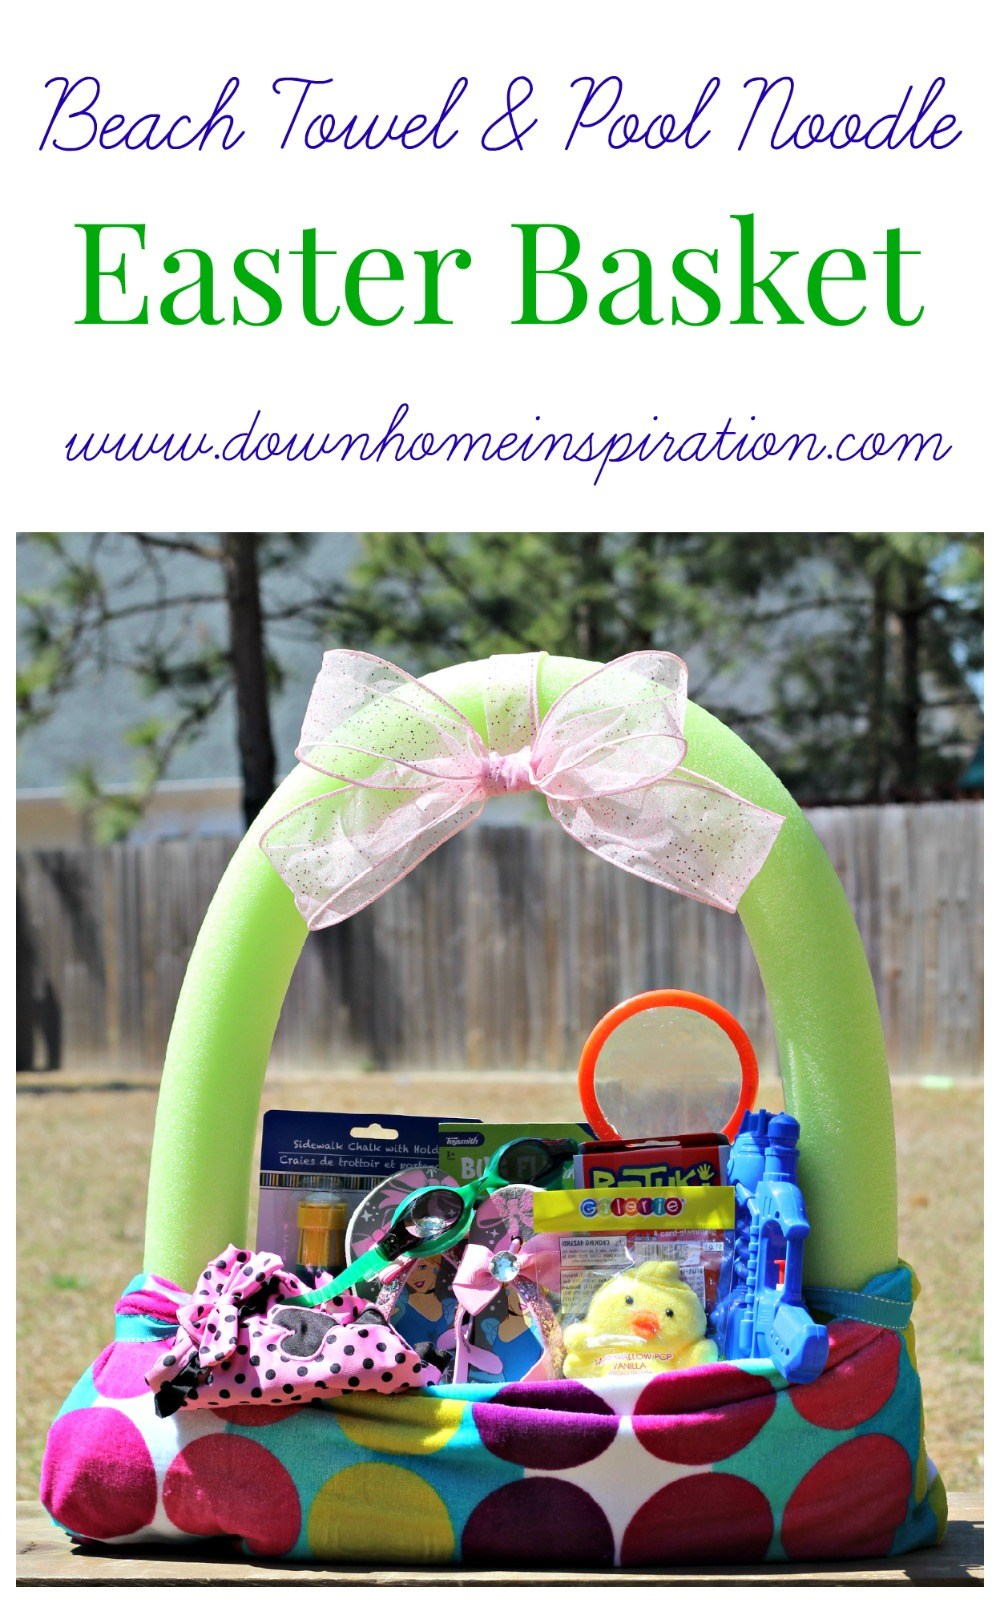 25 great easter basket ideas crazy little projects beach towel pool noodle easter basket 3 negle Images